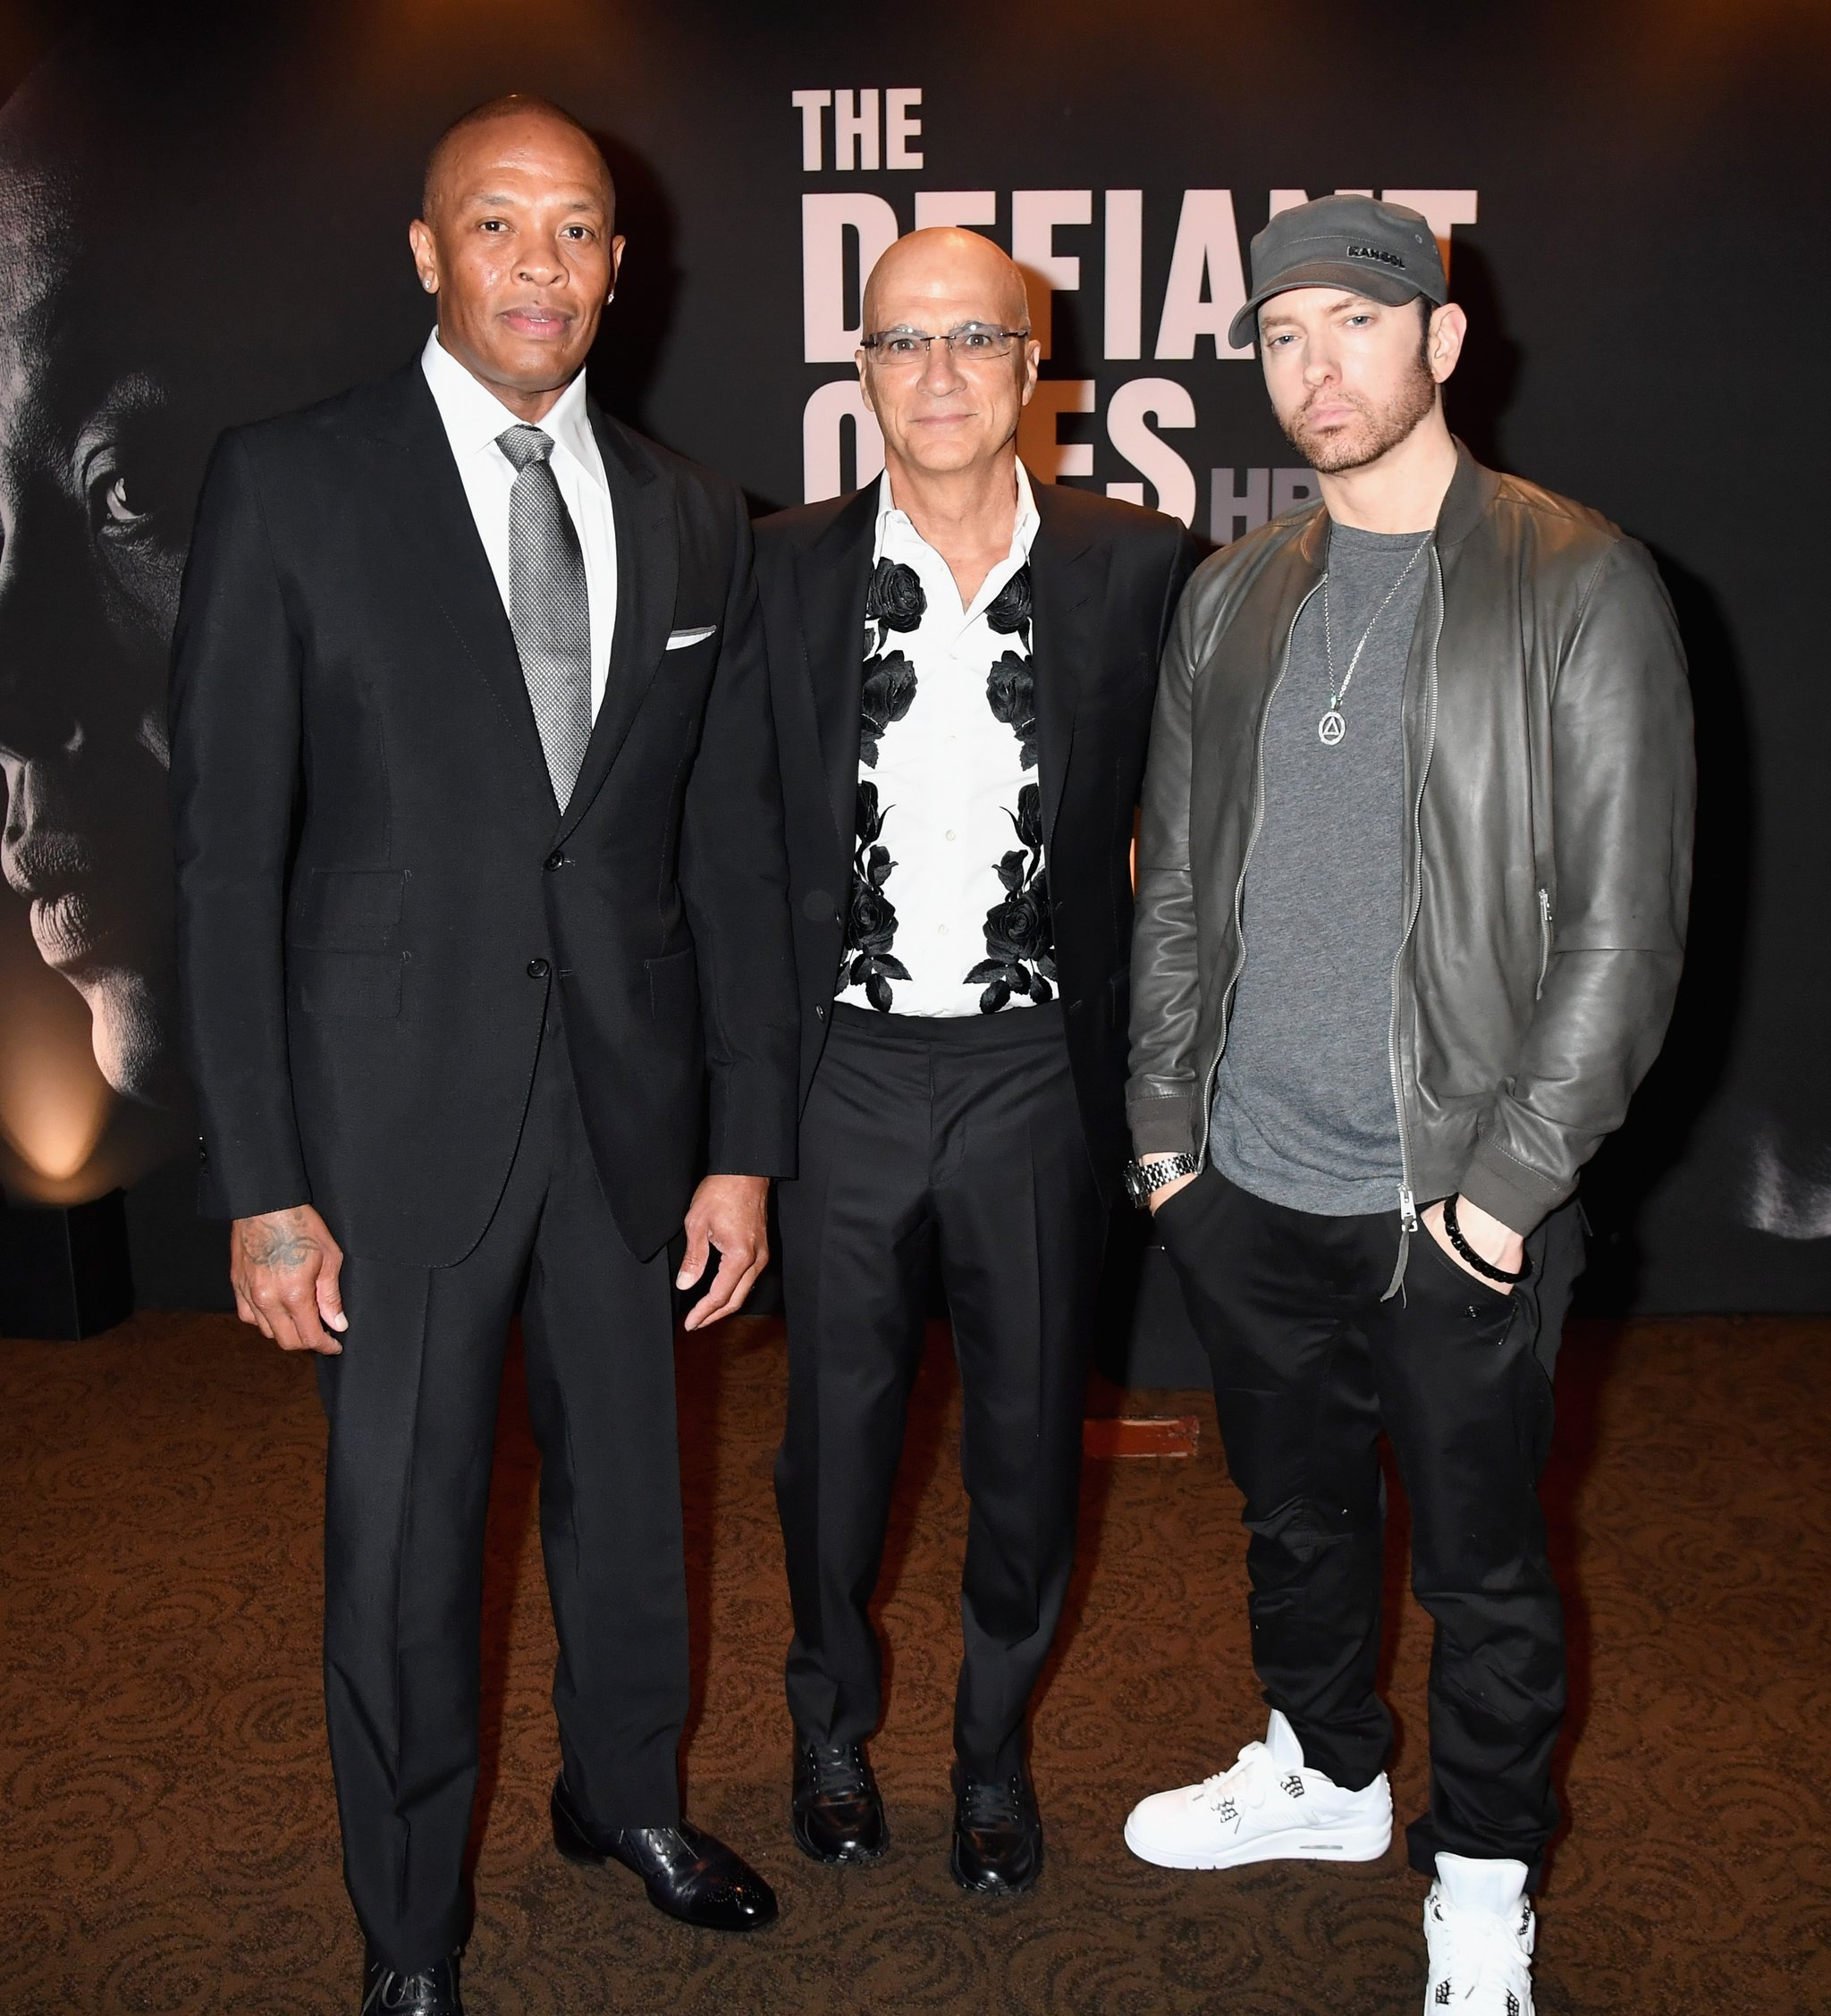 Eminem Appears With Unwanted Hair On His Face And I Don't Know If It's A Beard